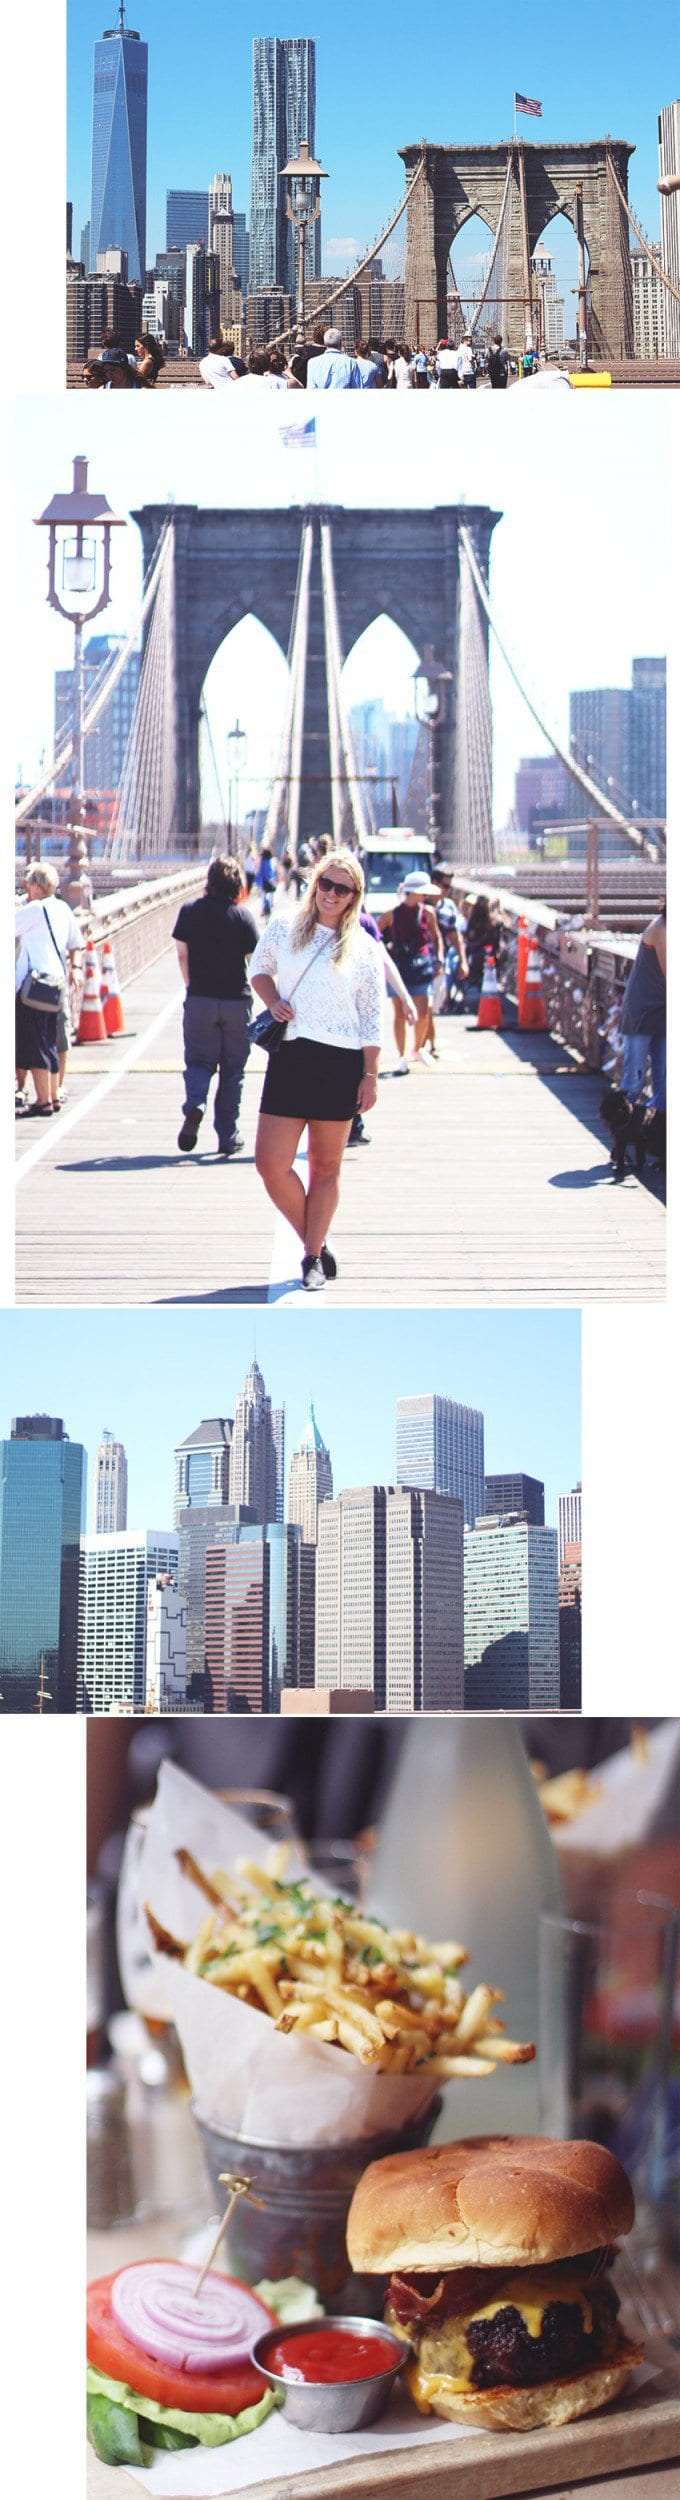 POSTKORT <i>Blonder på Brooklyn Bridge</i>